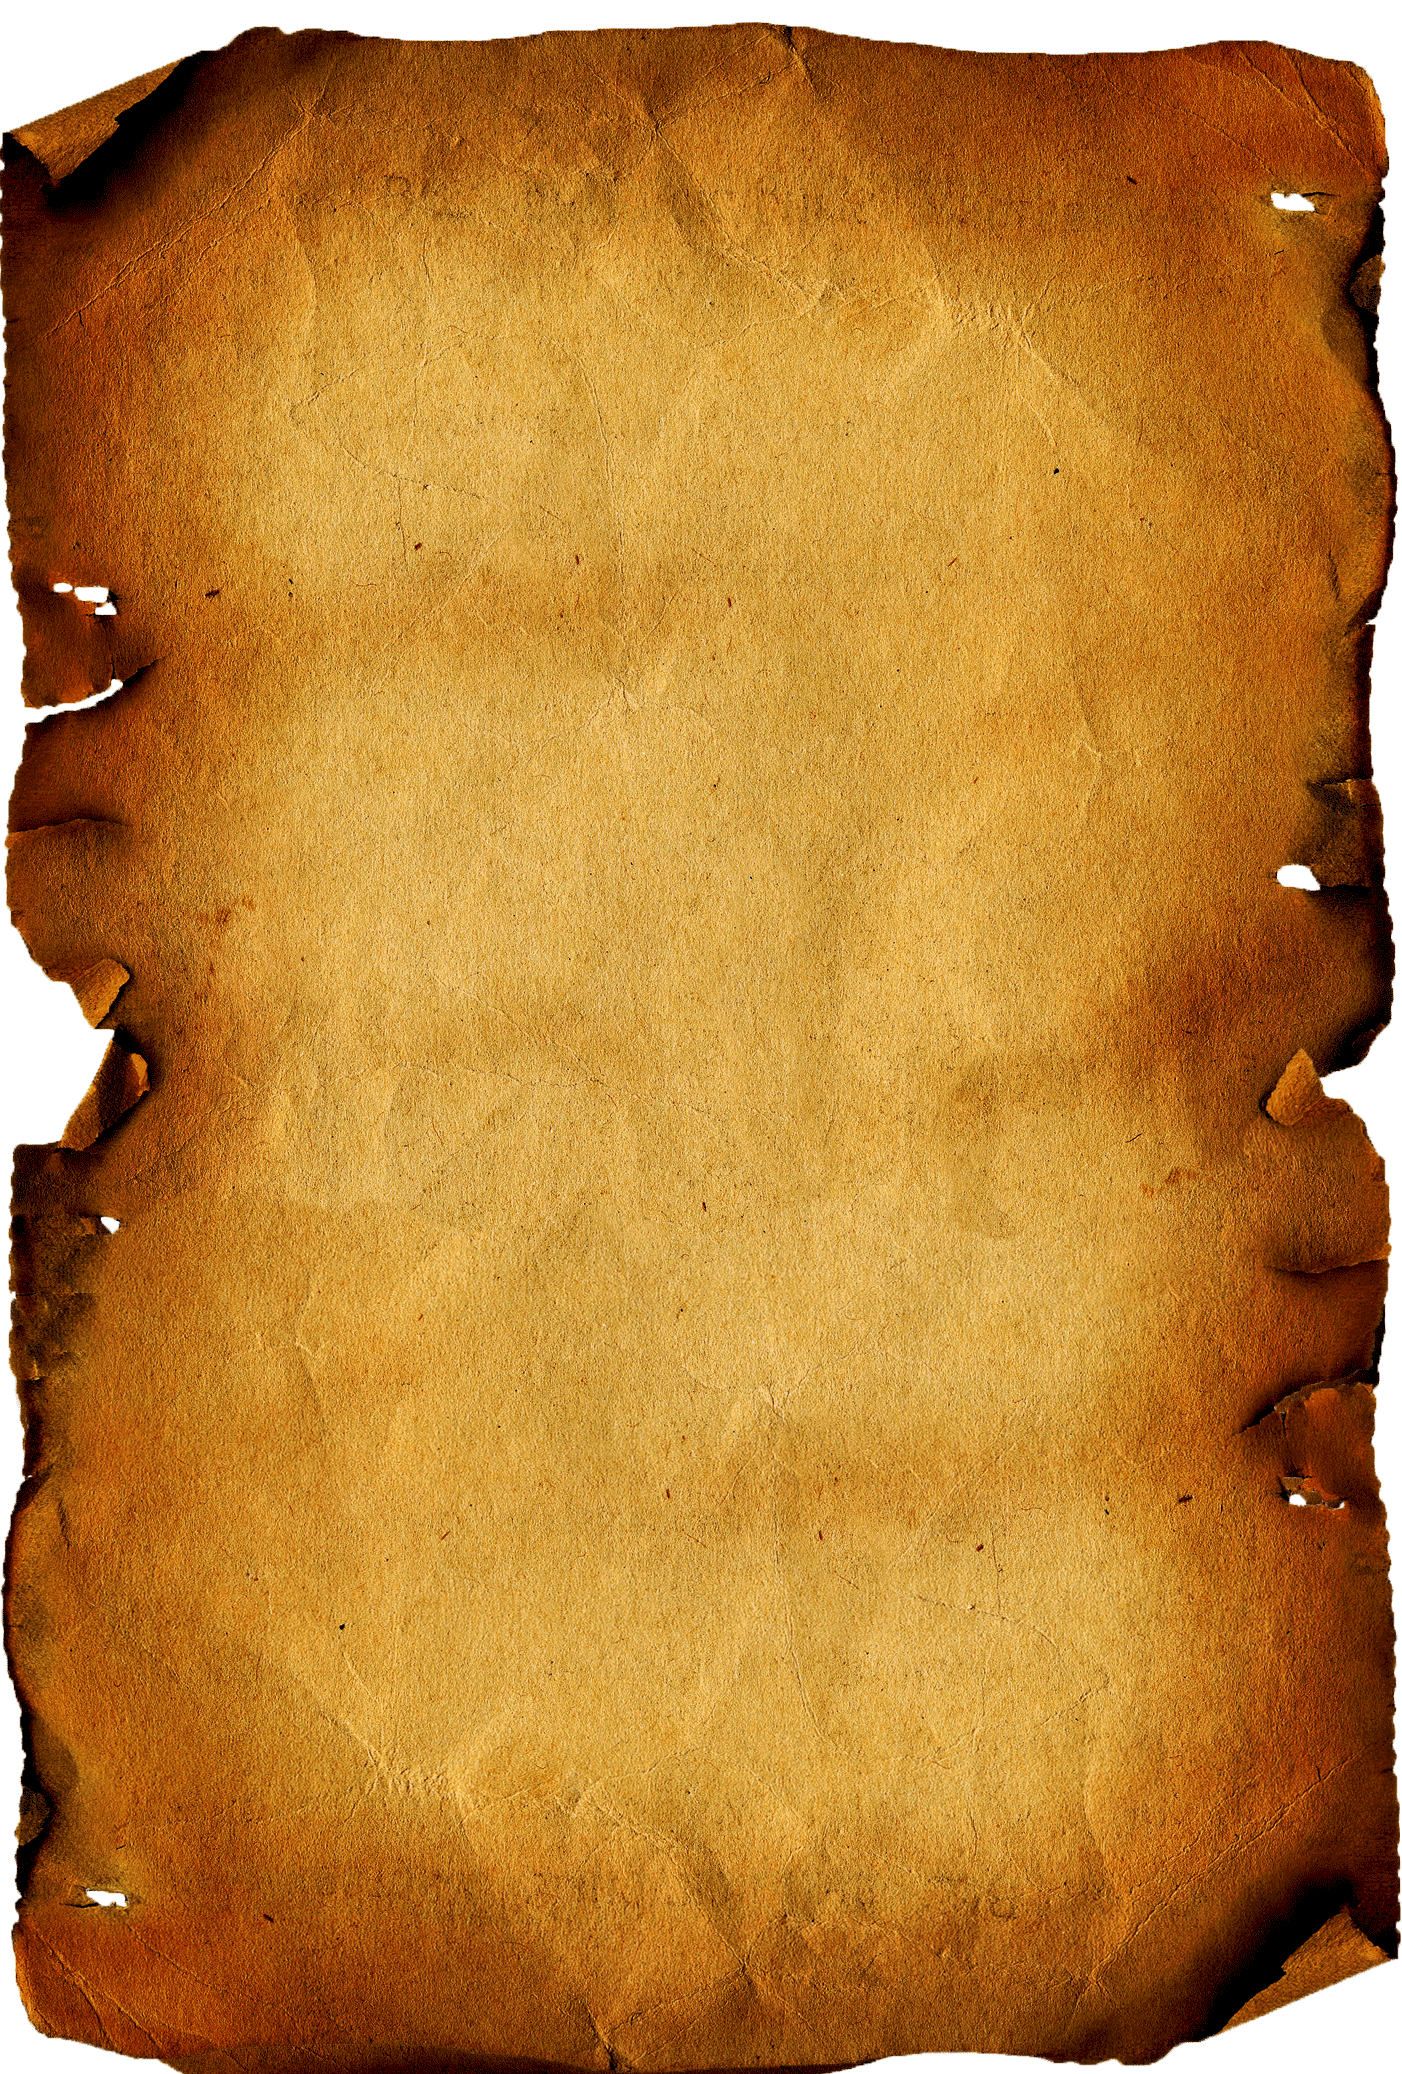 Burnt paper background png. Images of newspaper